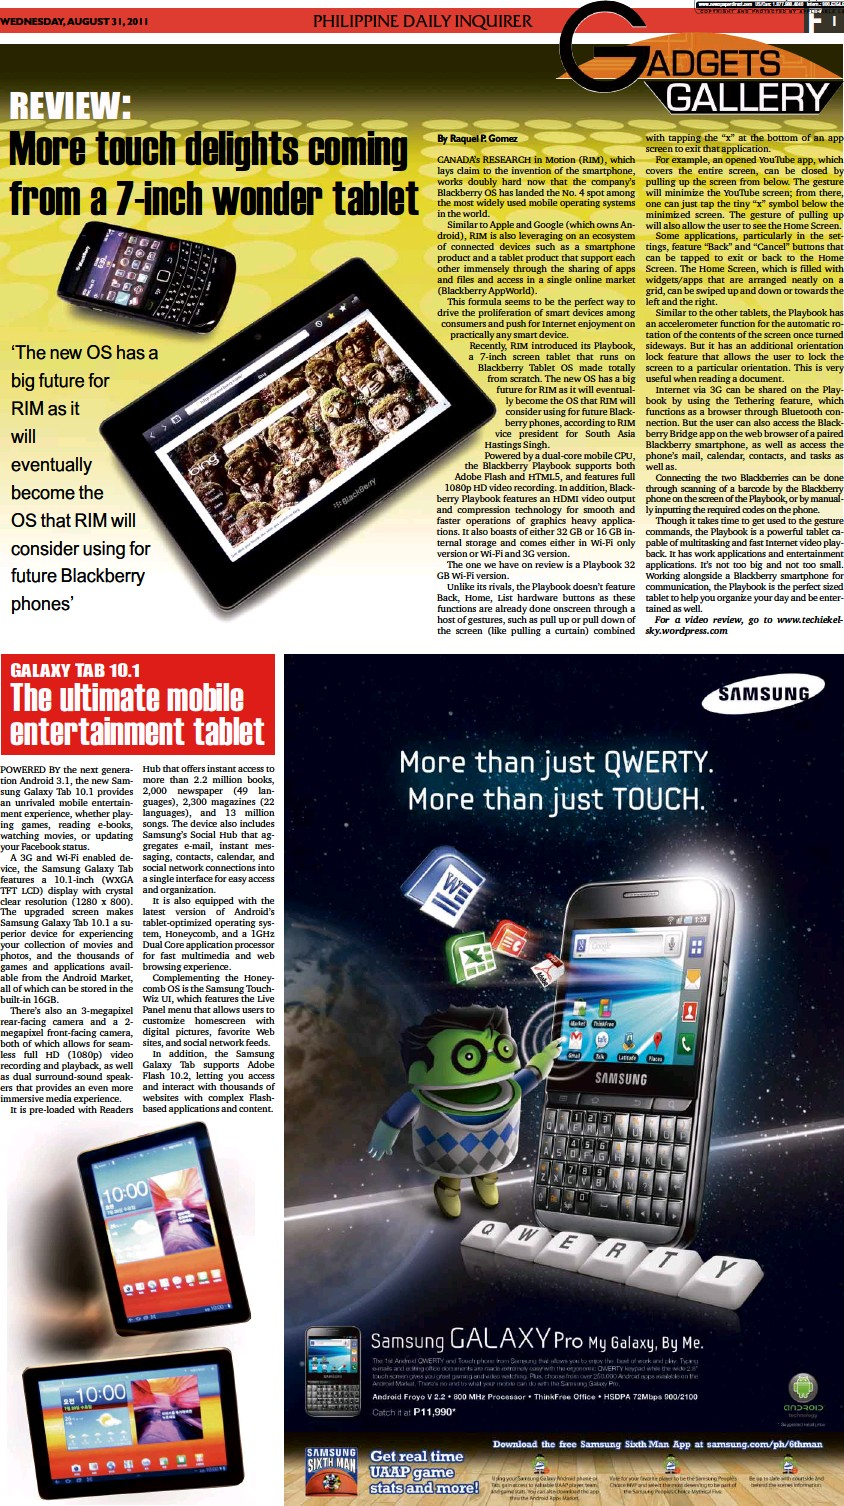 PressReader - Philippine Daily Inquirer: 2011-08-31 - The ultimate